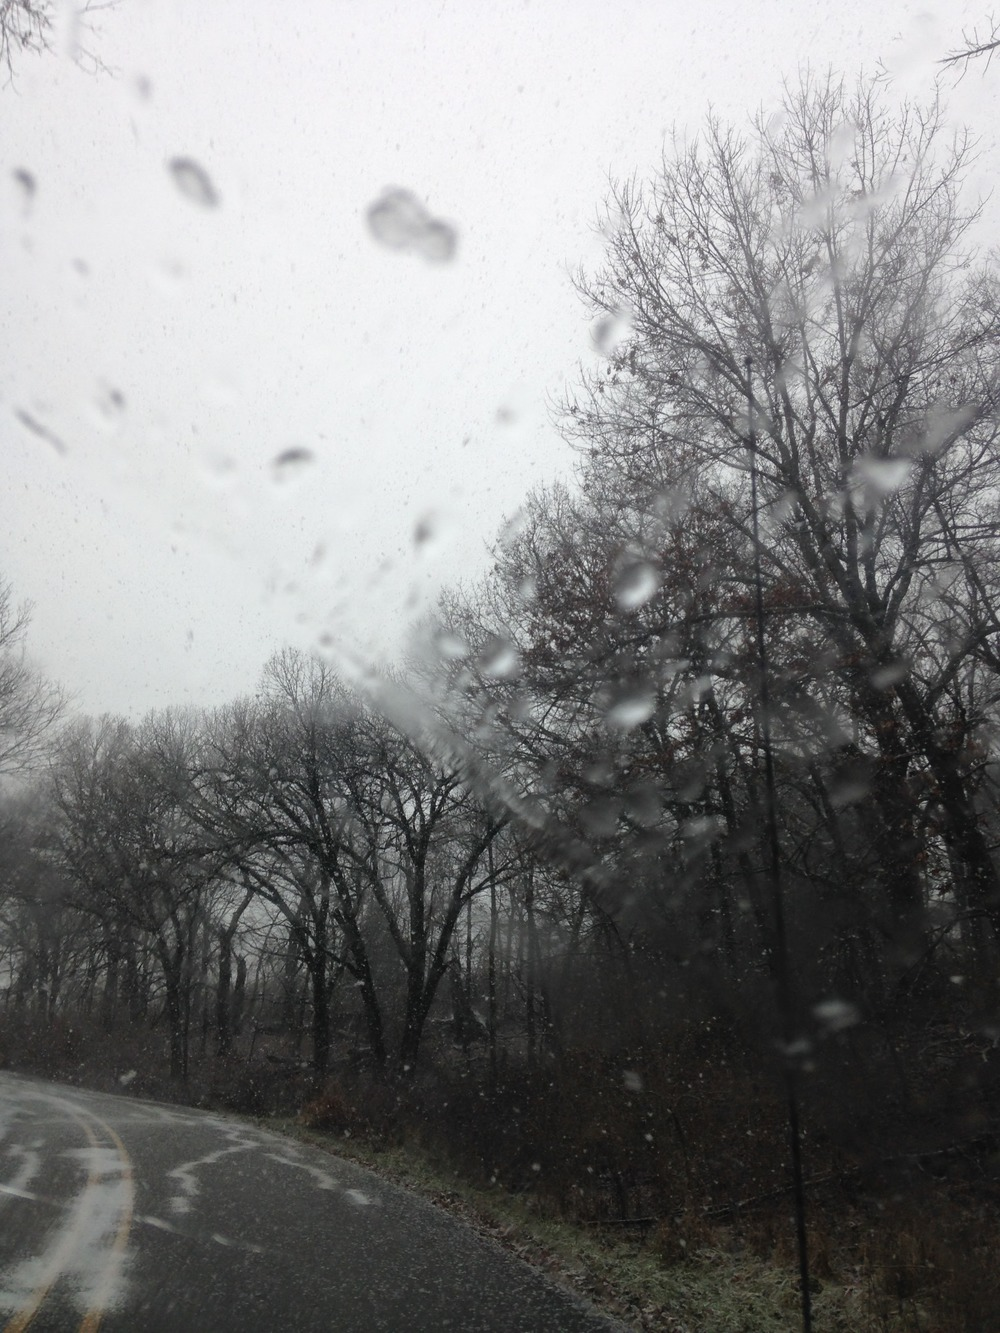 Gloomy-Snow-Over-Road.jpg